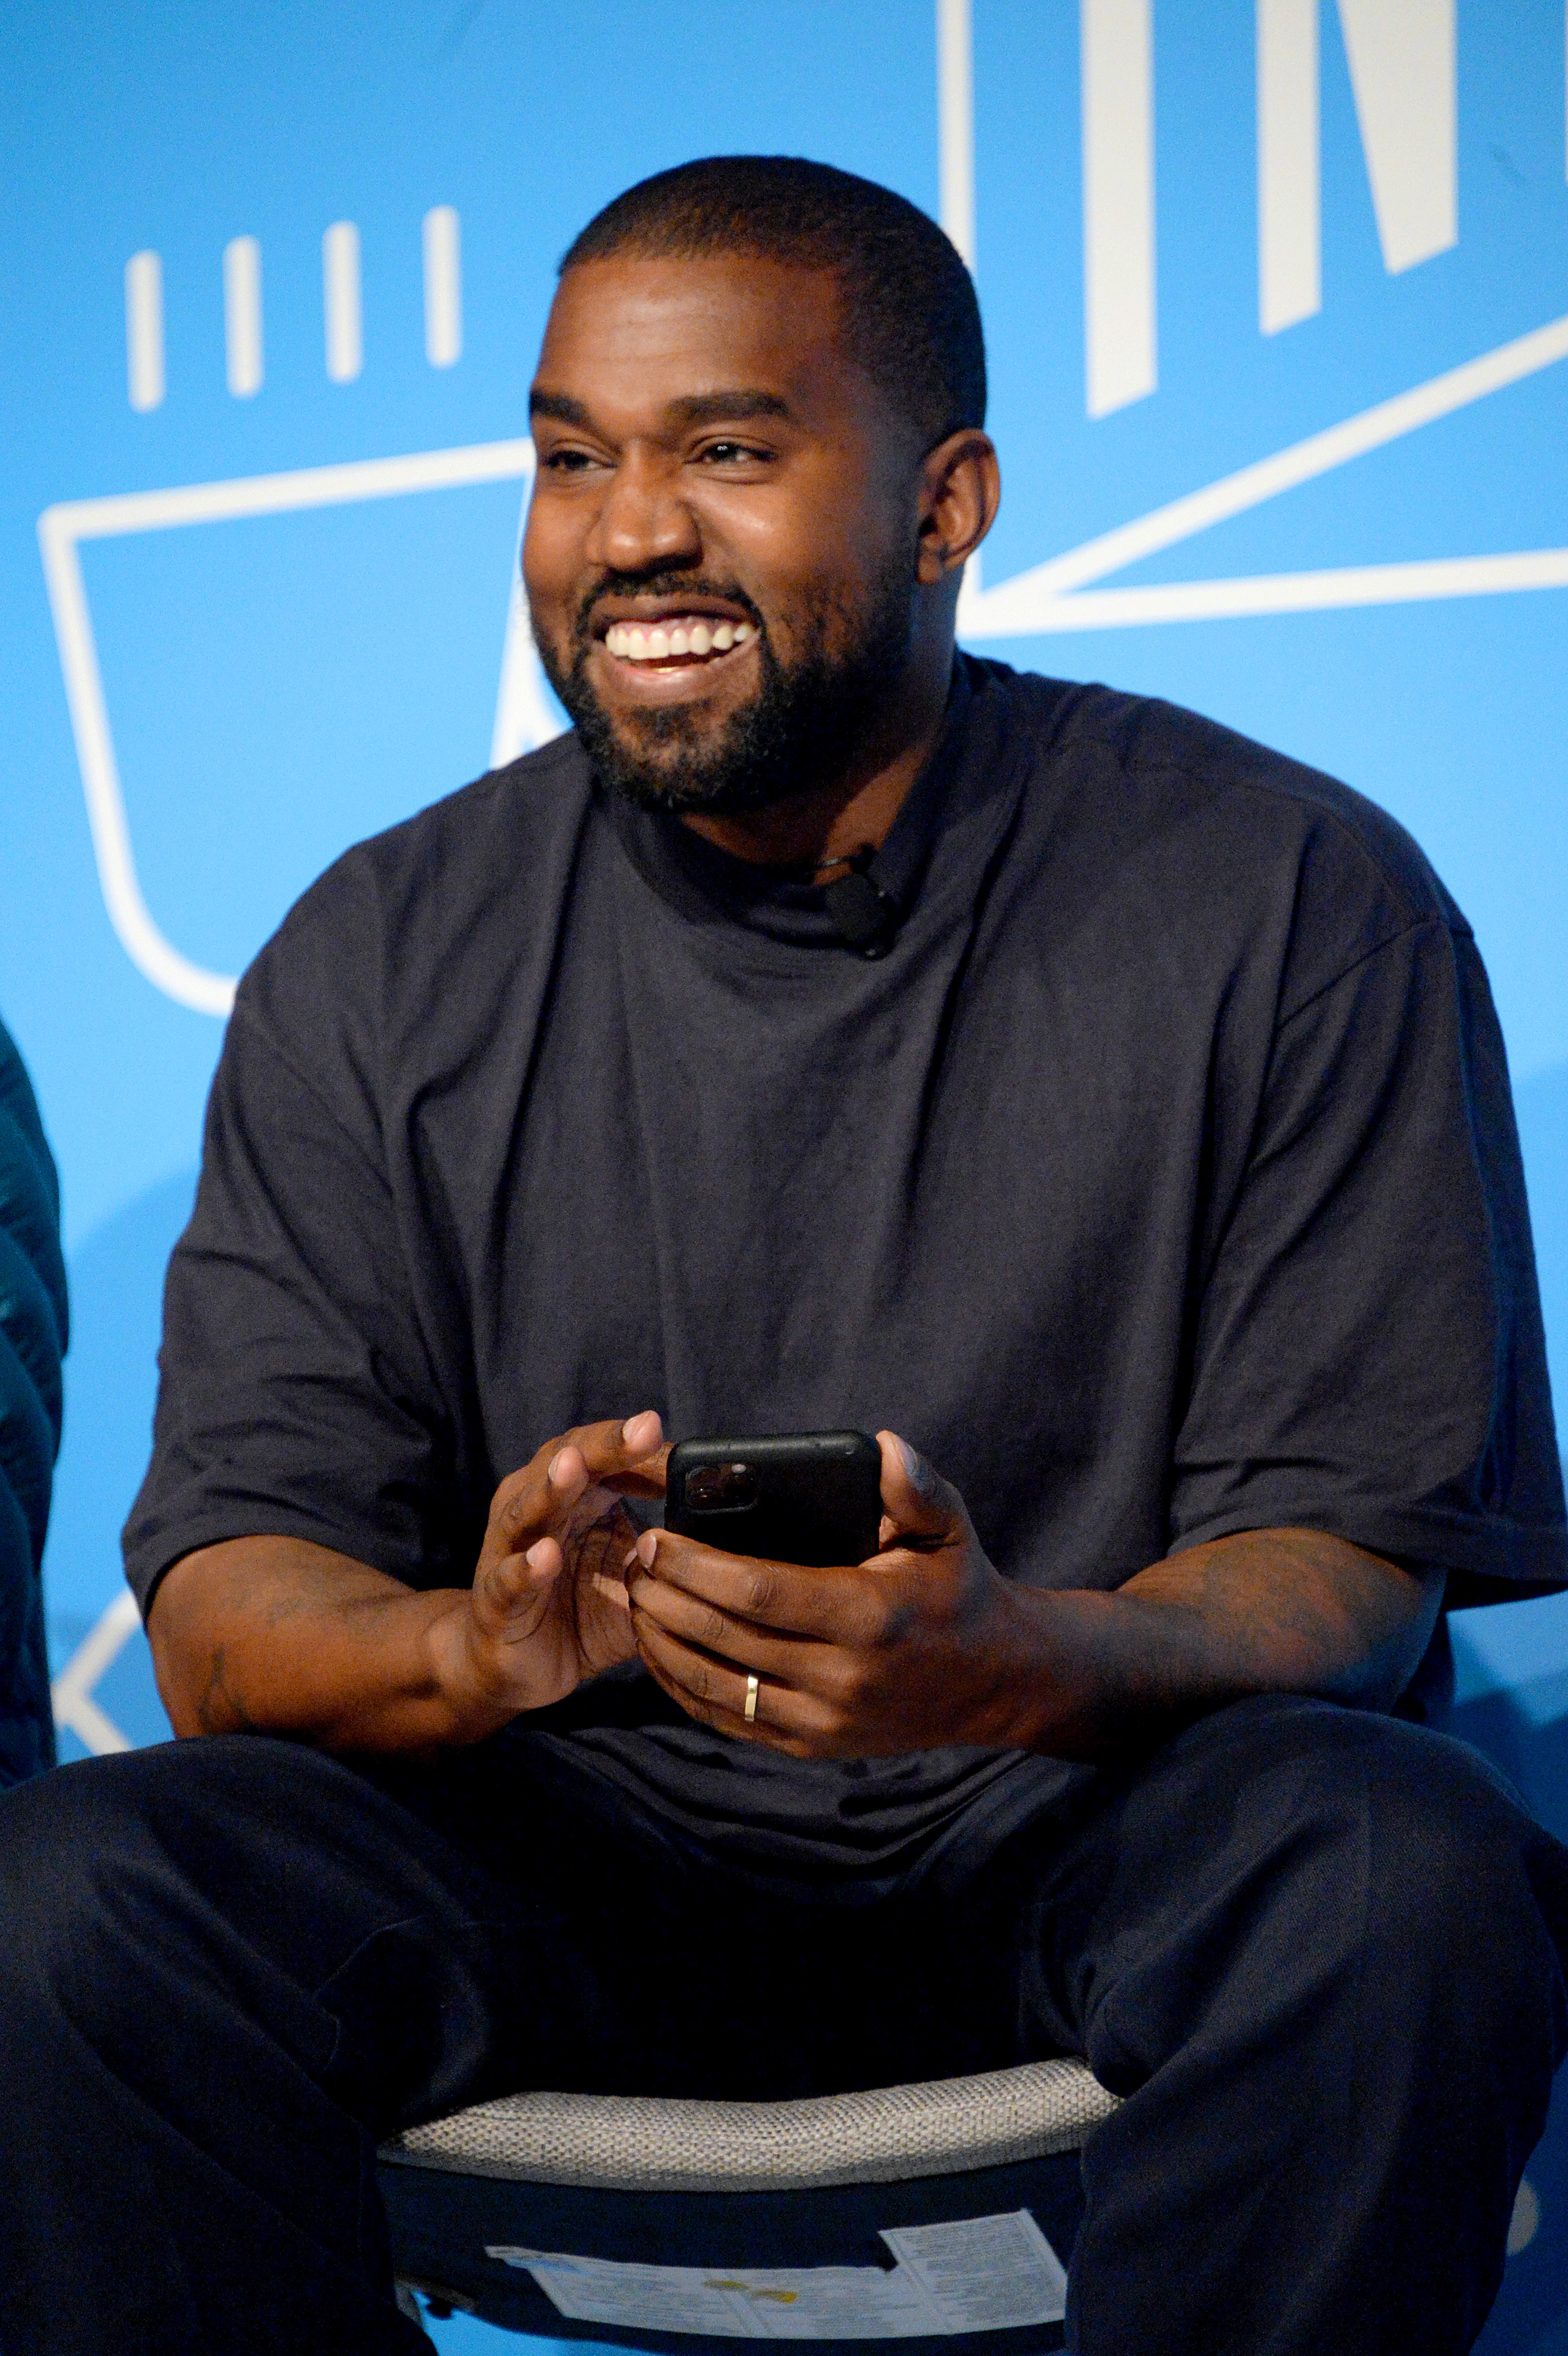 Kanye West smiles with his phone in his hand